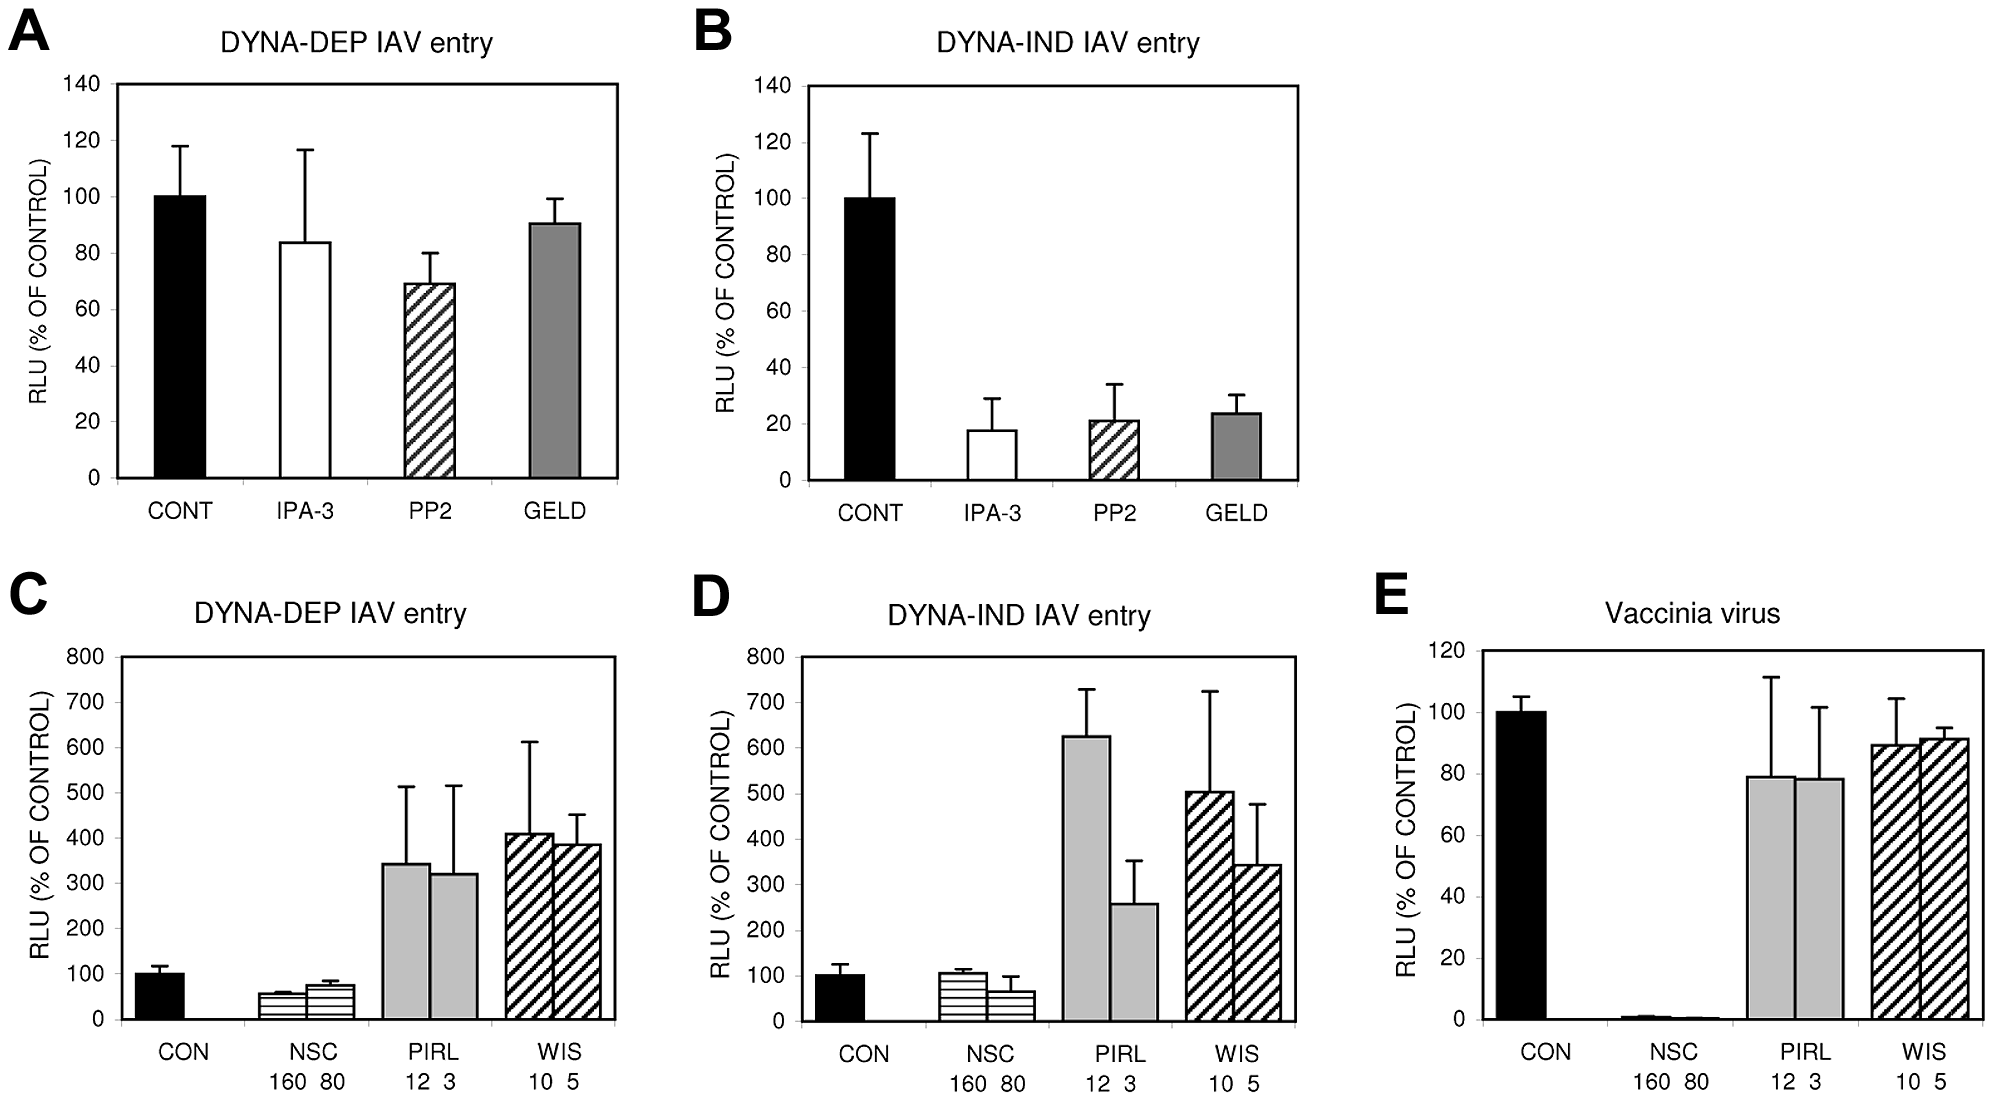 The DYNA-IND IAV entry pathway is sensitive to inhibitors of PAK1, src and HSP90.